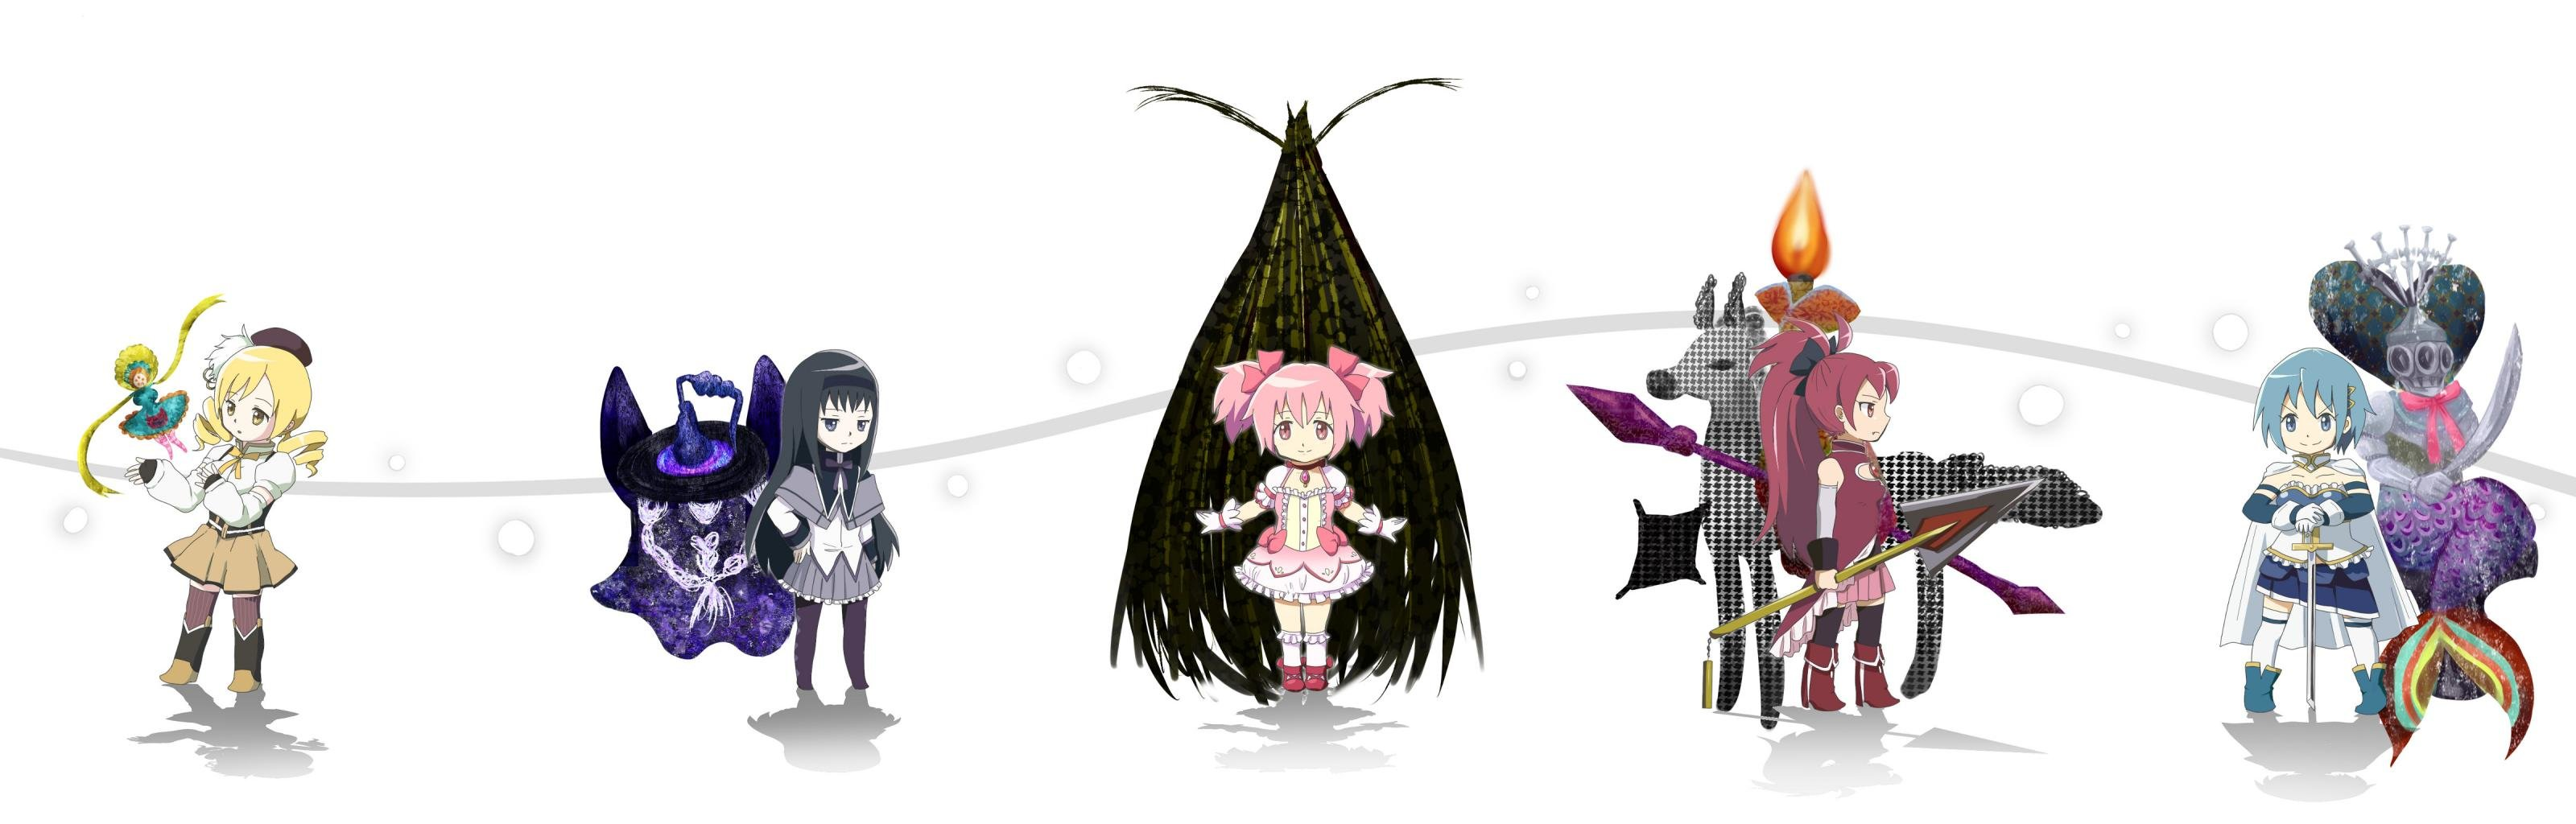 High resolution Puella Magi Madoka Magica dual monitor 3200x1024 wallpaper ID:32174 for desktop